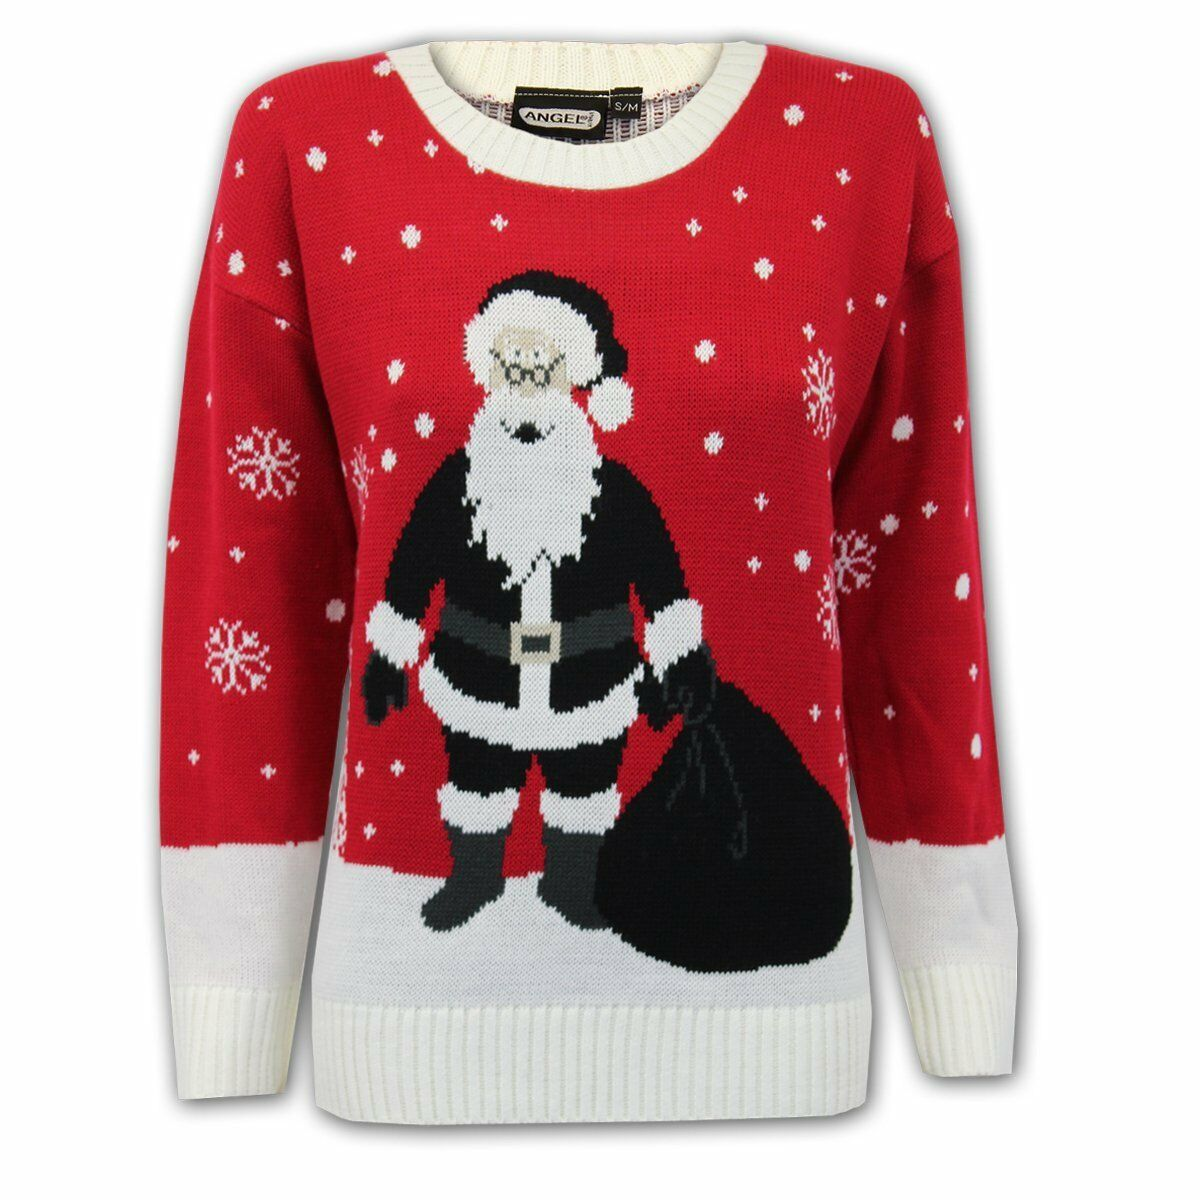 At Cheesy Christmas Jumpers, we are the home of stylish novelty Christmas Jumpers unlike any other around. Since we've designed and produced Christmas jumper collections that have stretched the boundries and we have become the leading independent Christmas jumper .